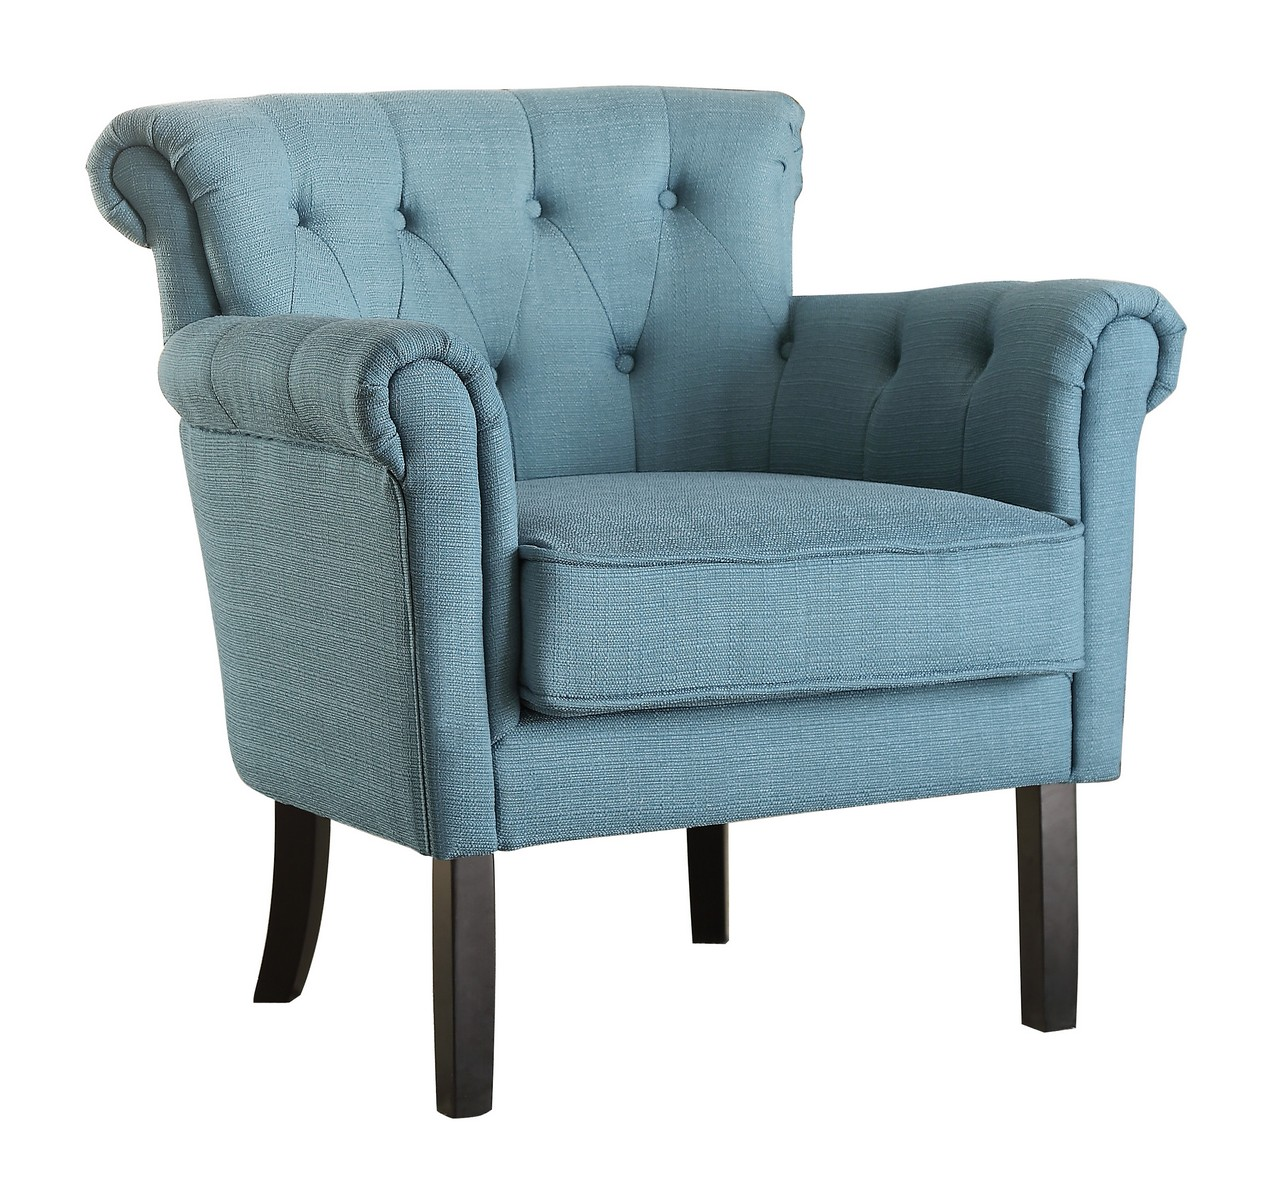 Homelegance Barlowe Accent Chair Dark Teal 1193f5s At